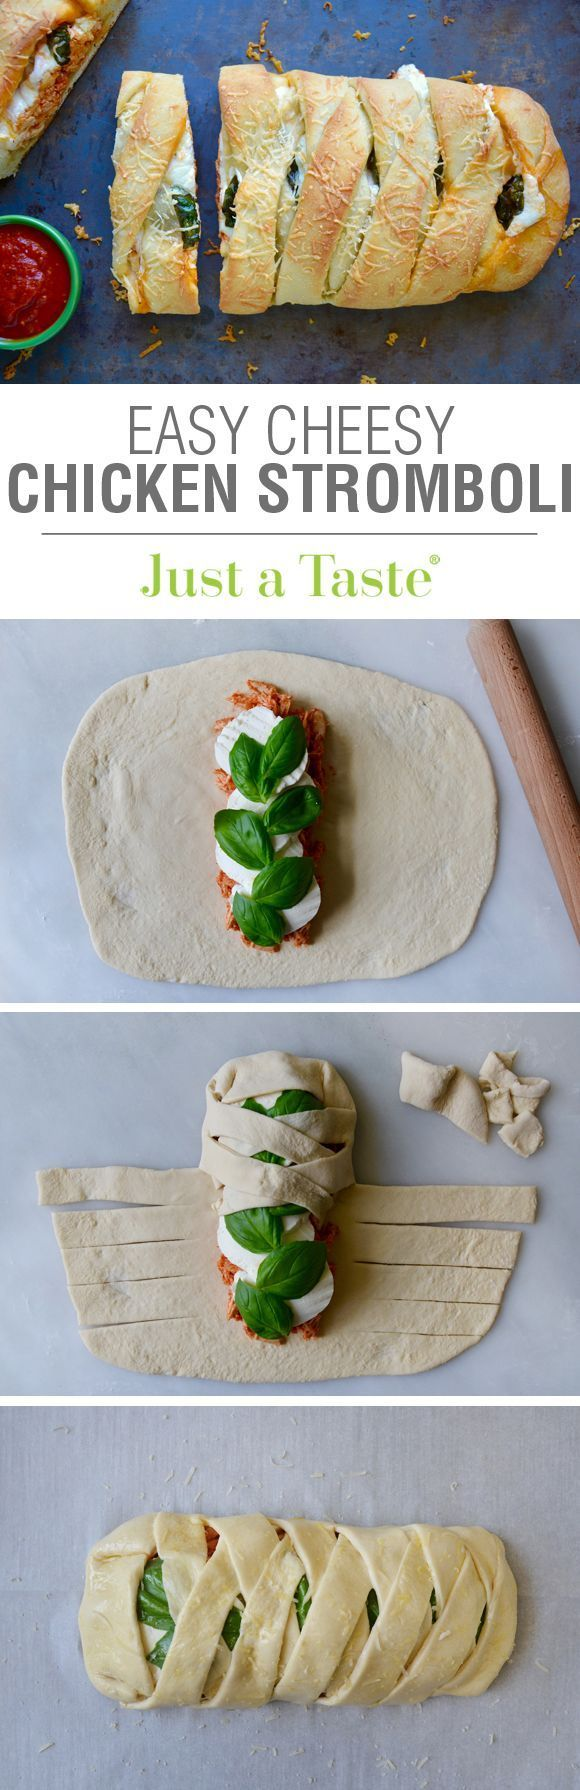 Easy Cheesy Chicken Stromboli #recipe on justataste.com